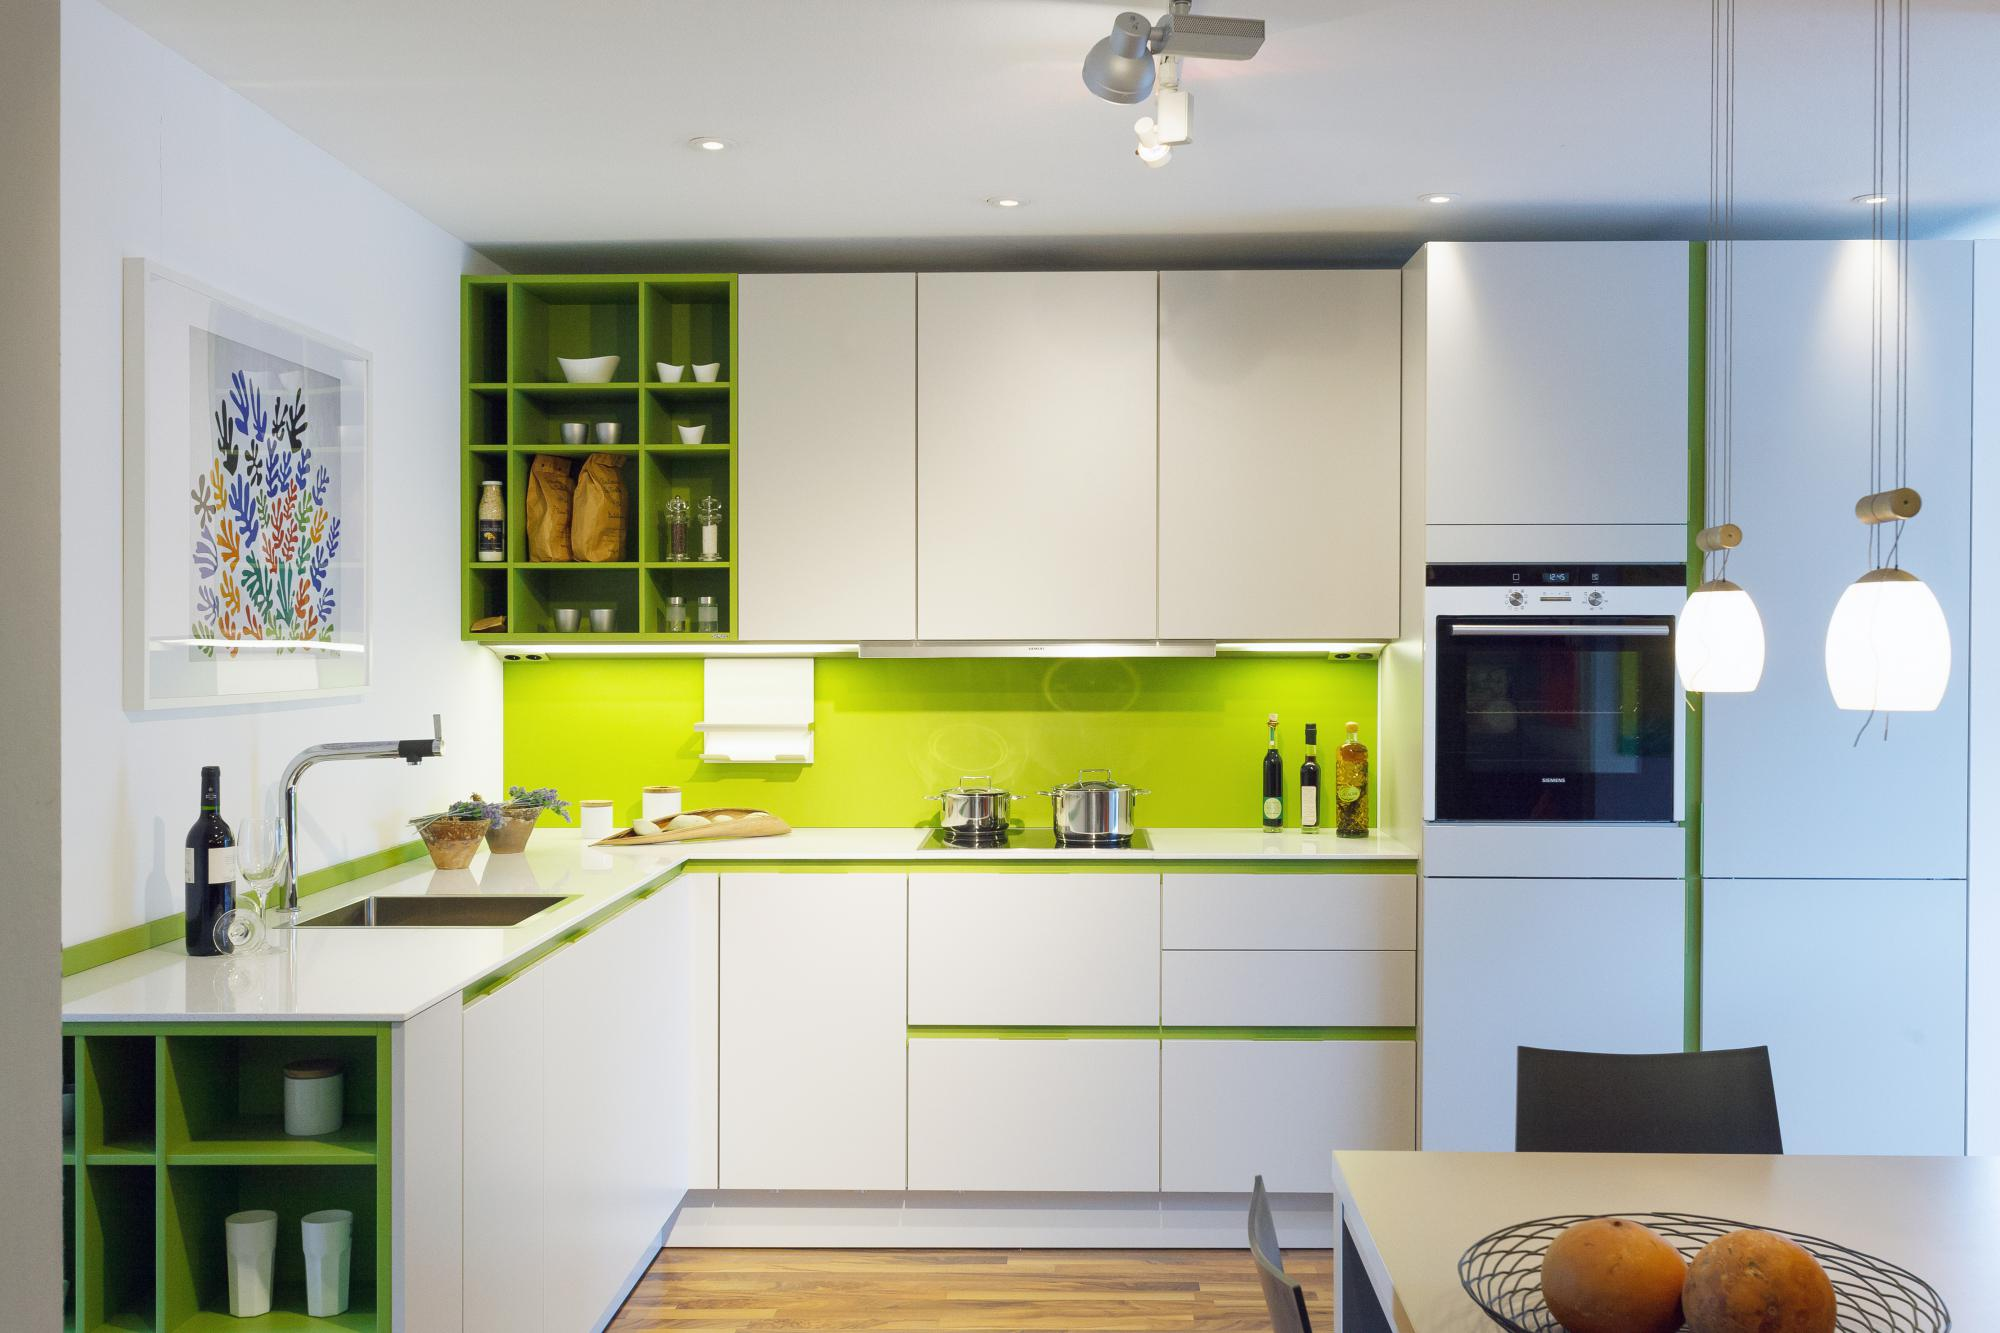 Contemporary Kitchen Design Kitchens With A Pop Of Color Studio Mm Architect